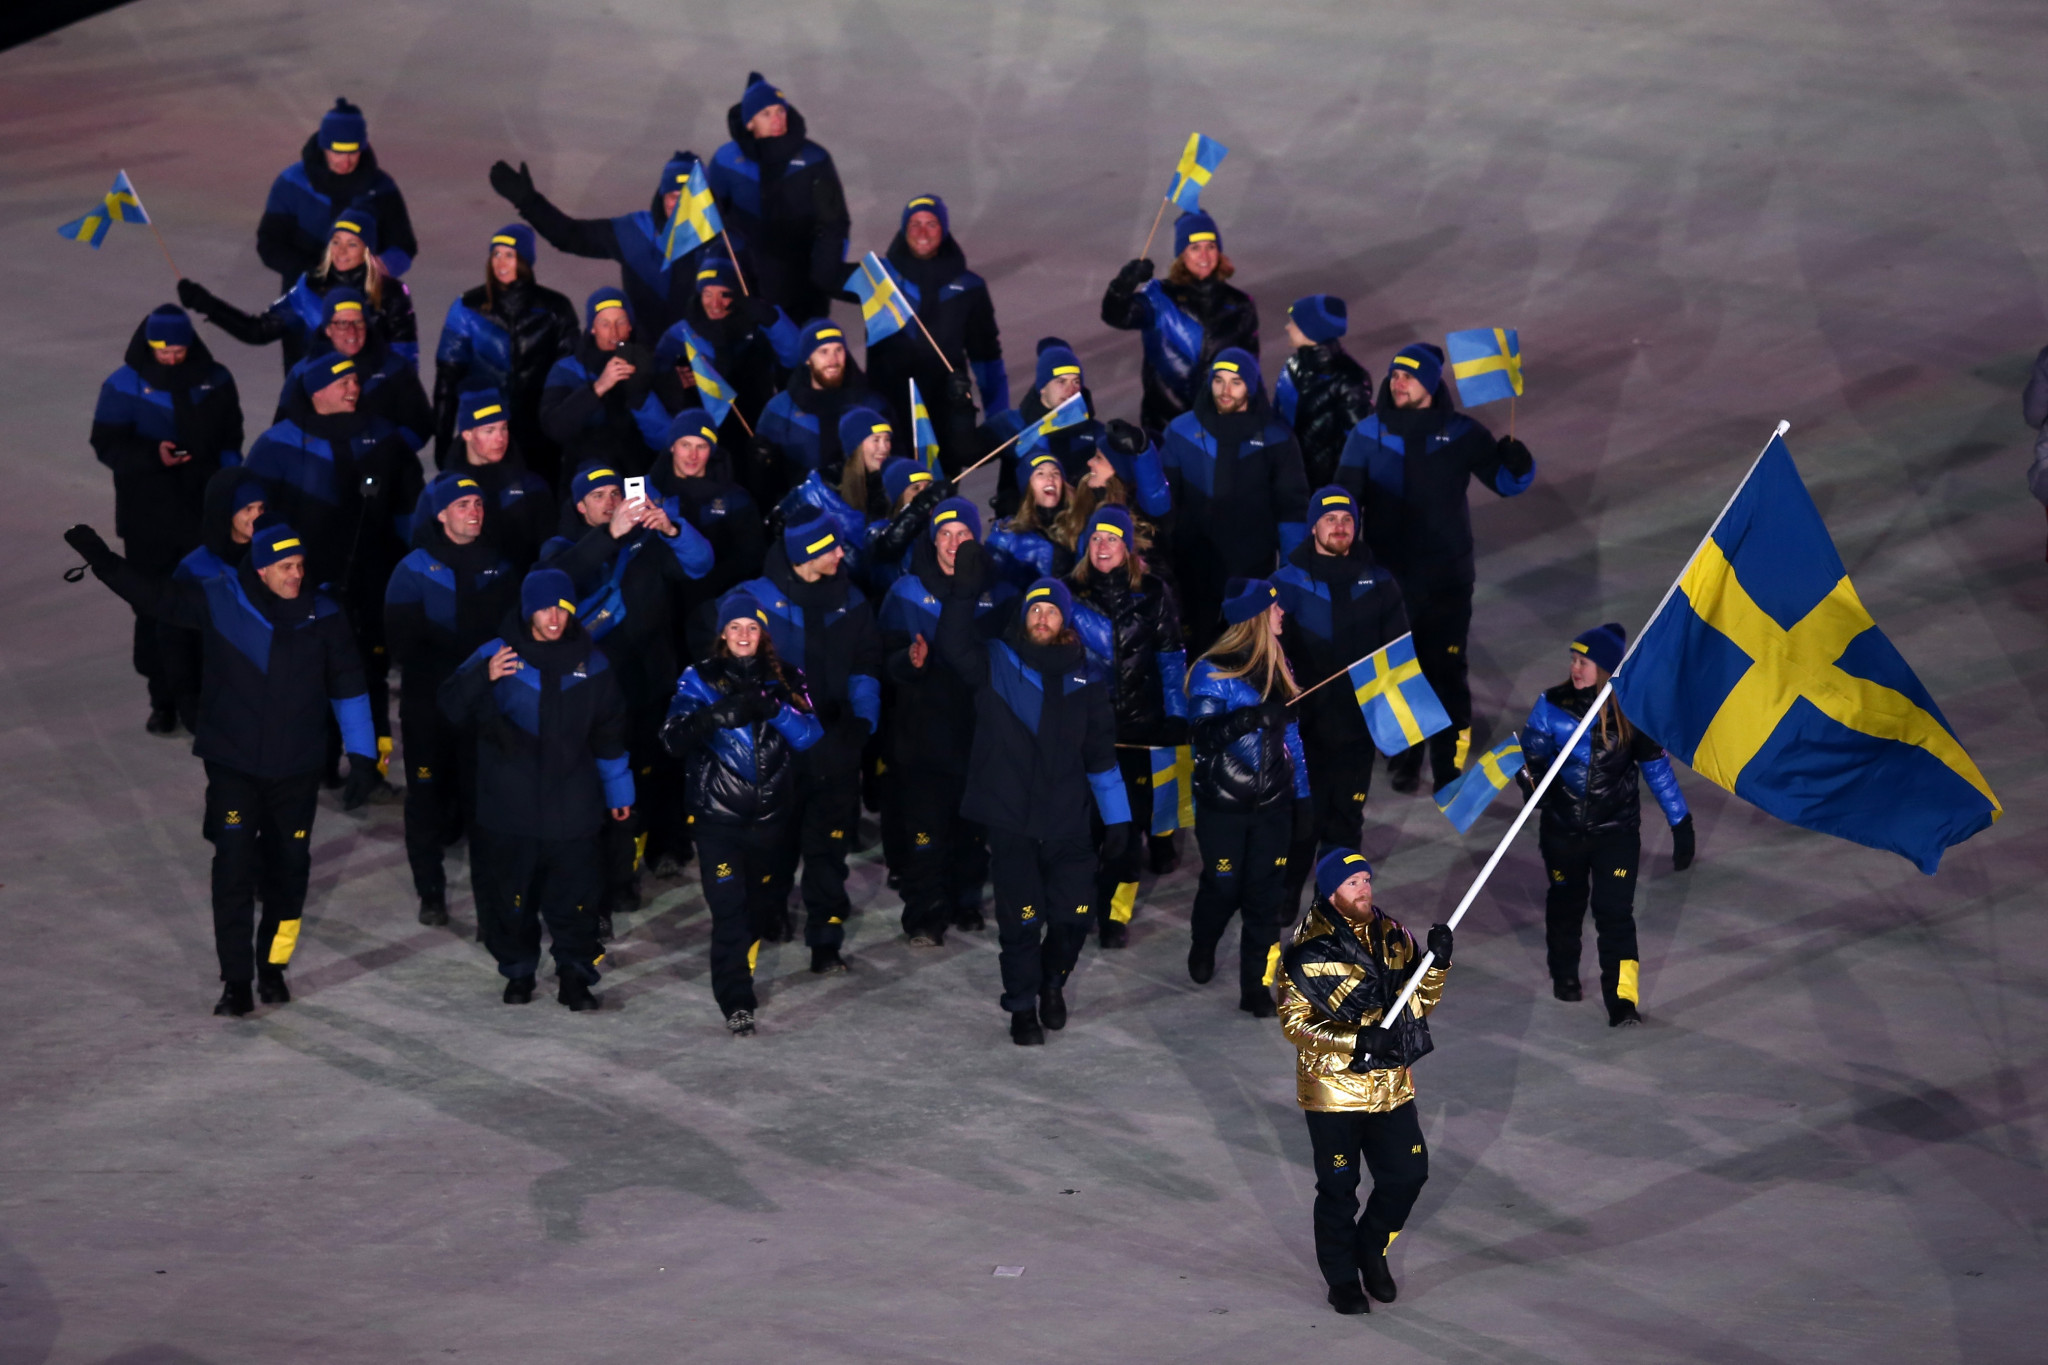 Sweden begins preparations for 2026 and 2030 Winter Olympics with investment drive